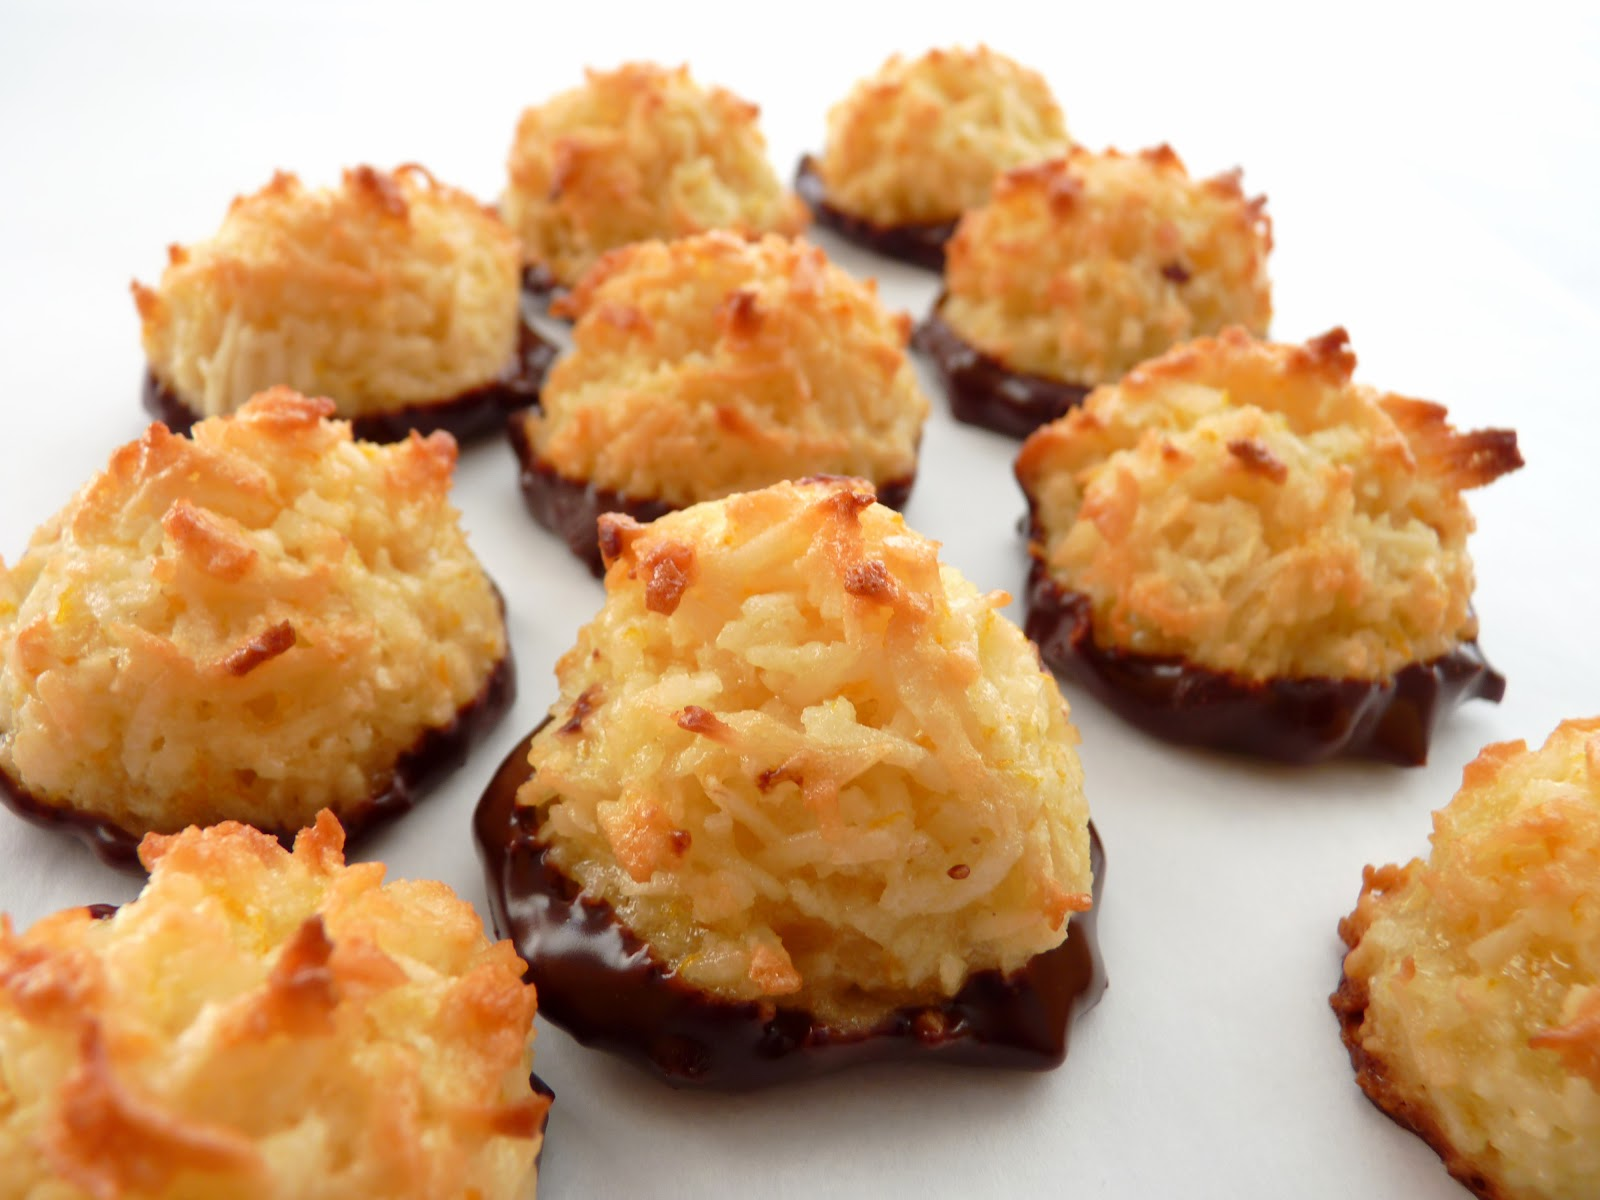 :pastry studio: Orange & Chocolate Coconut Macaroons